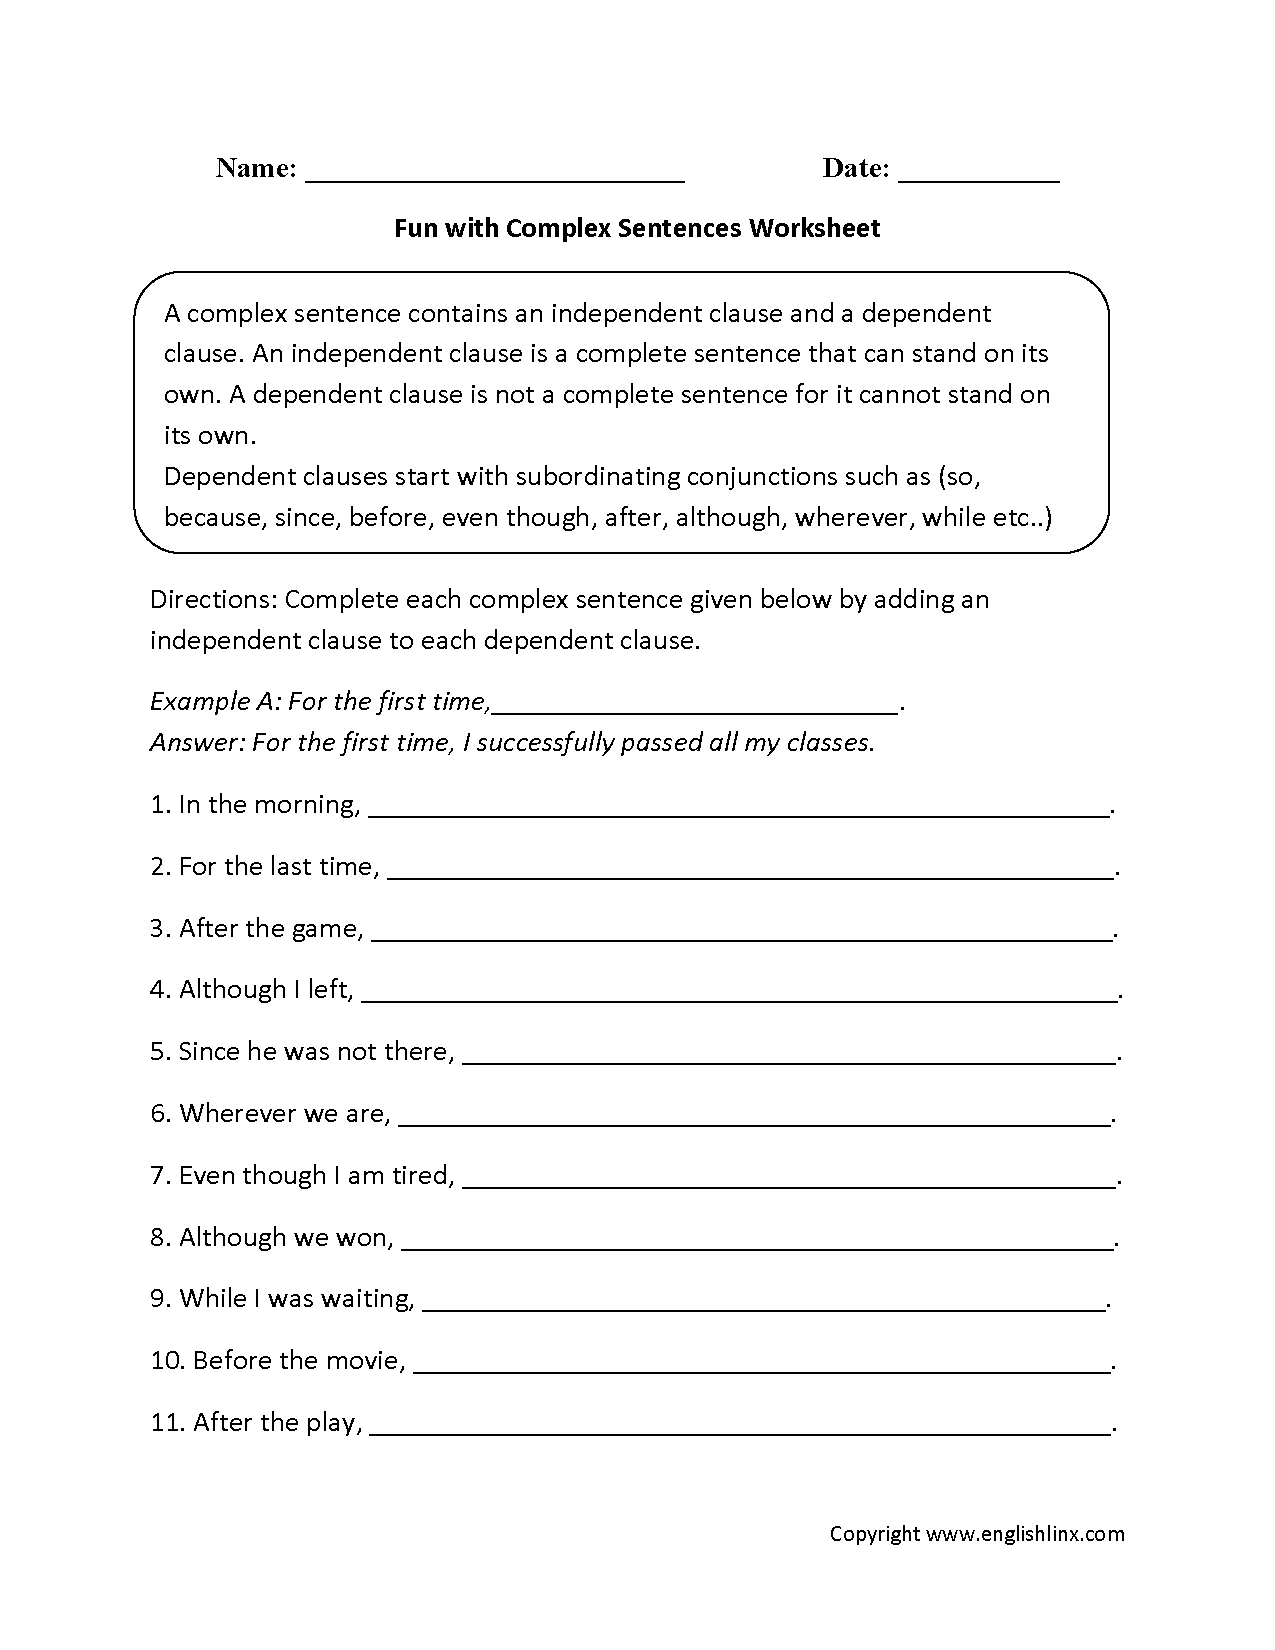 Worksheets Compound Sentence Worksheets fun with complex sentences worksheet special education worksheet